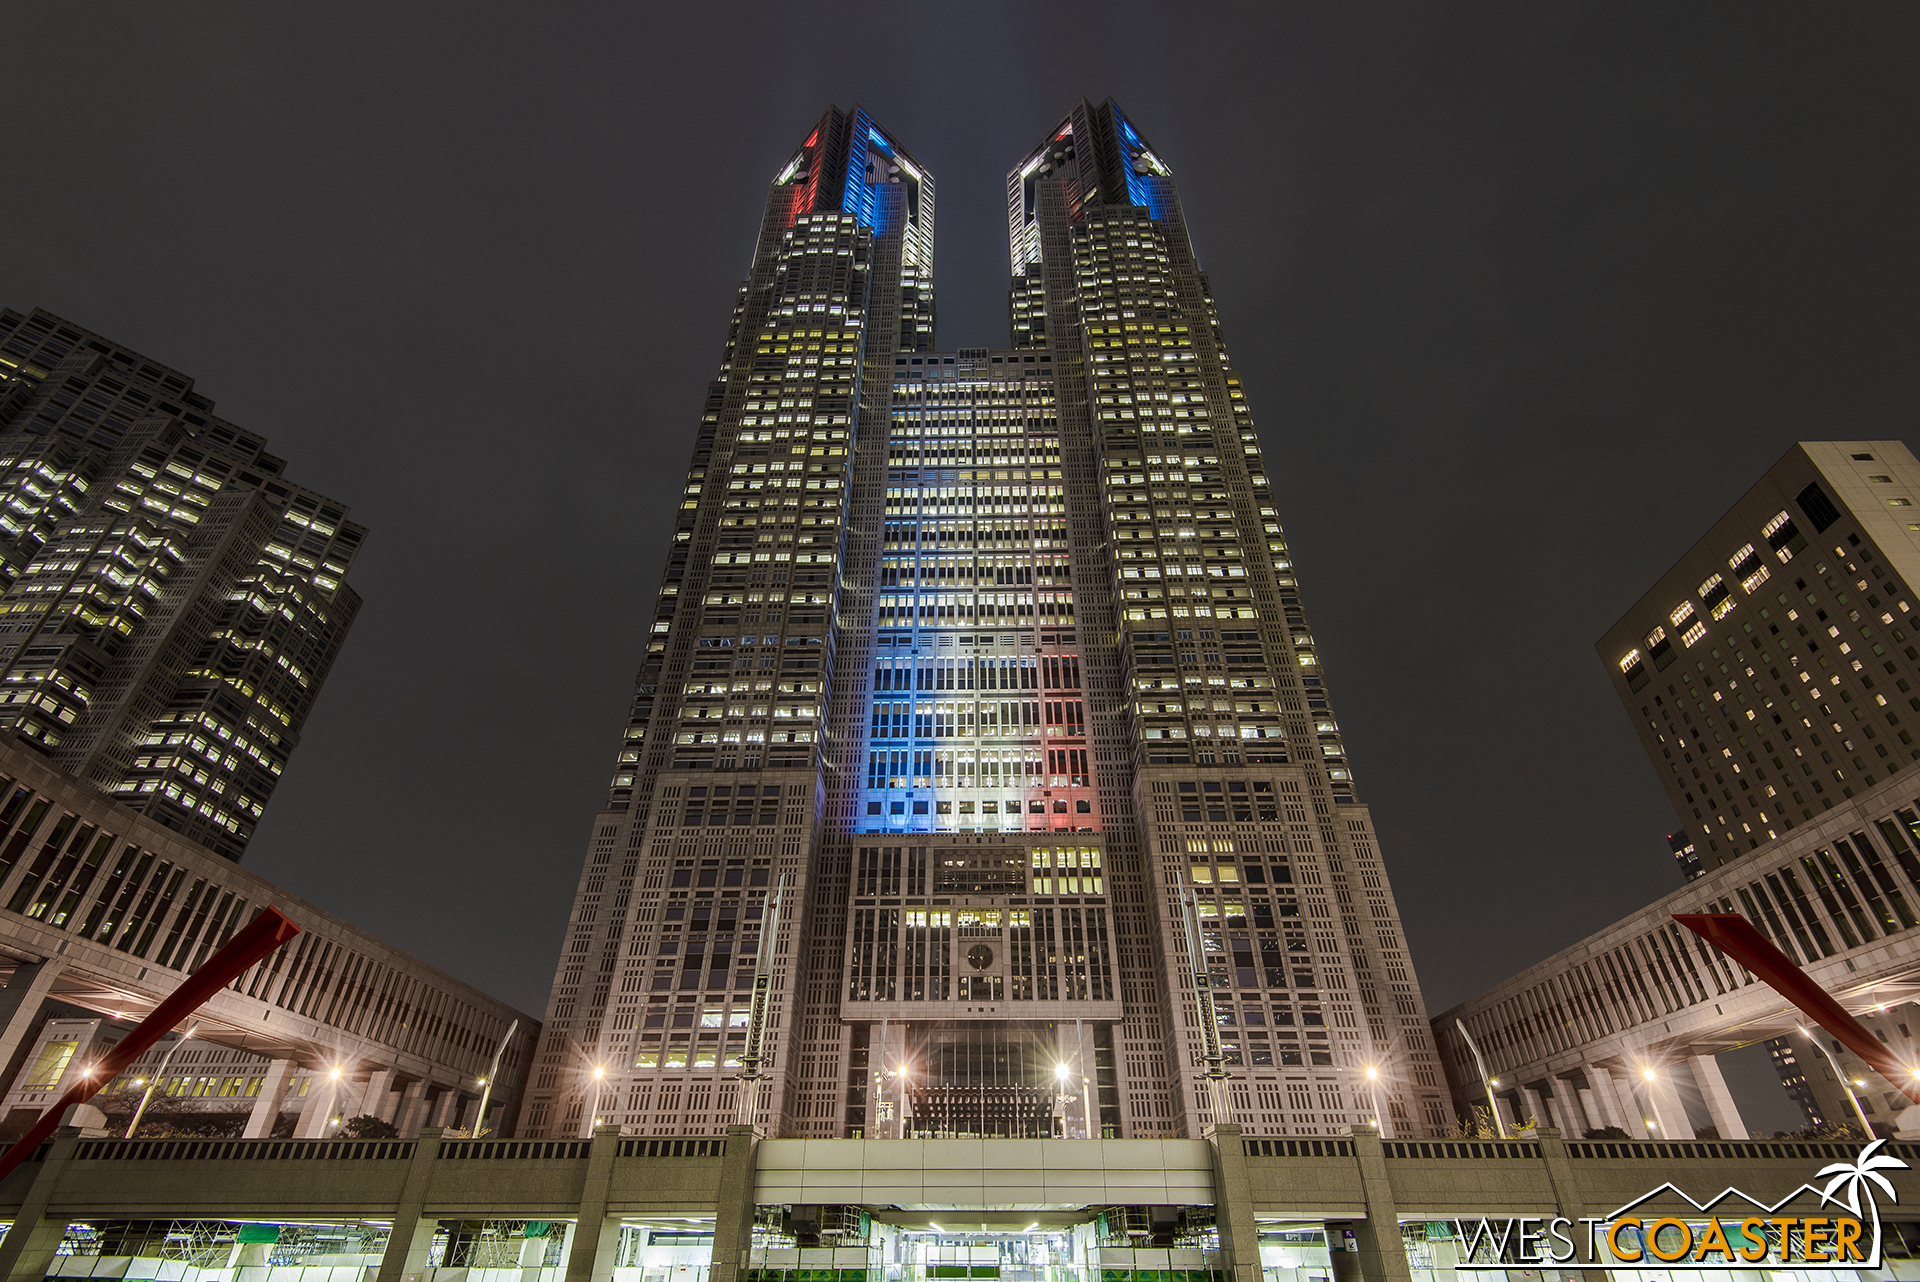 The Tokyo Metropolitan Building offers great views of the city from the west side of the metropolis, and it's free to go up for the view!